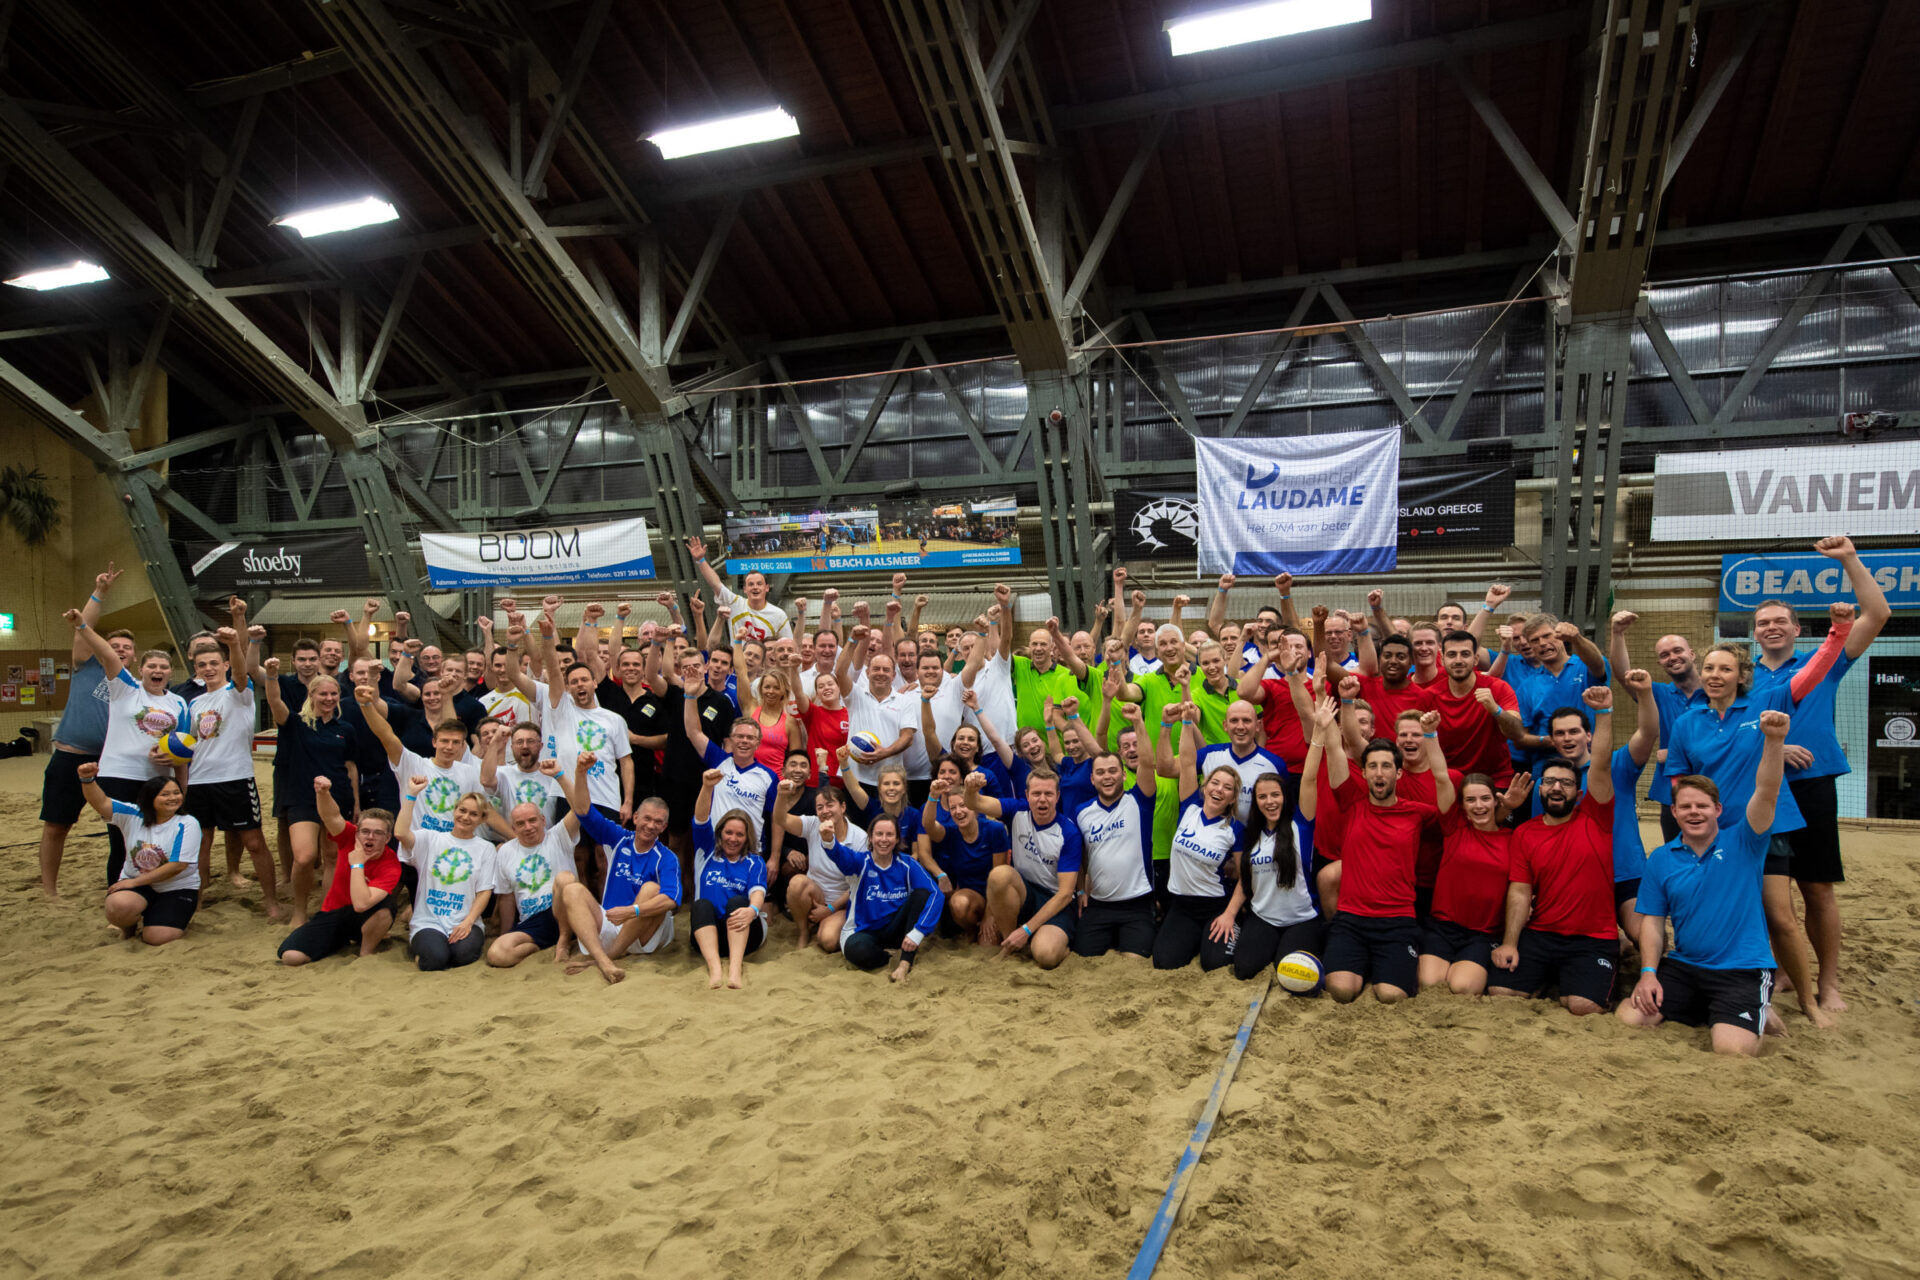 Beachvolleybaltoernooi Laudame Financials